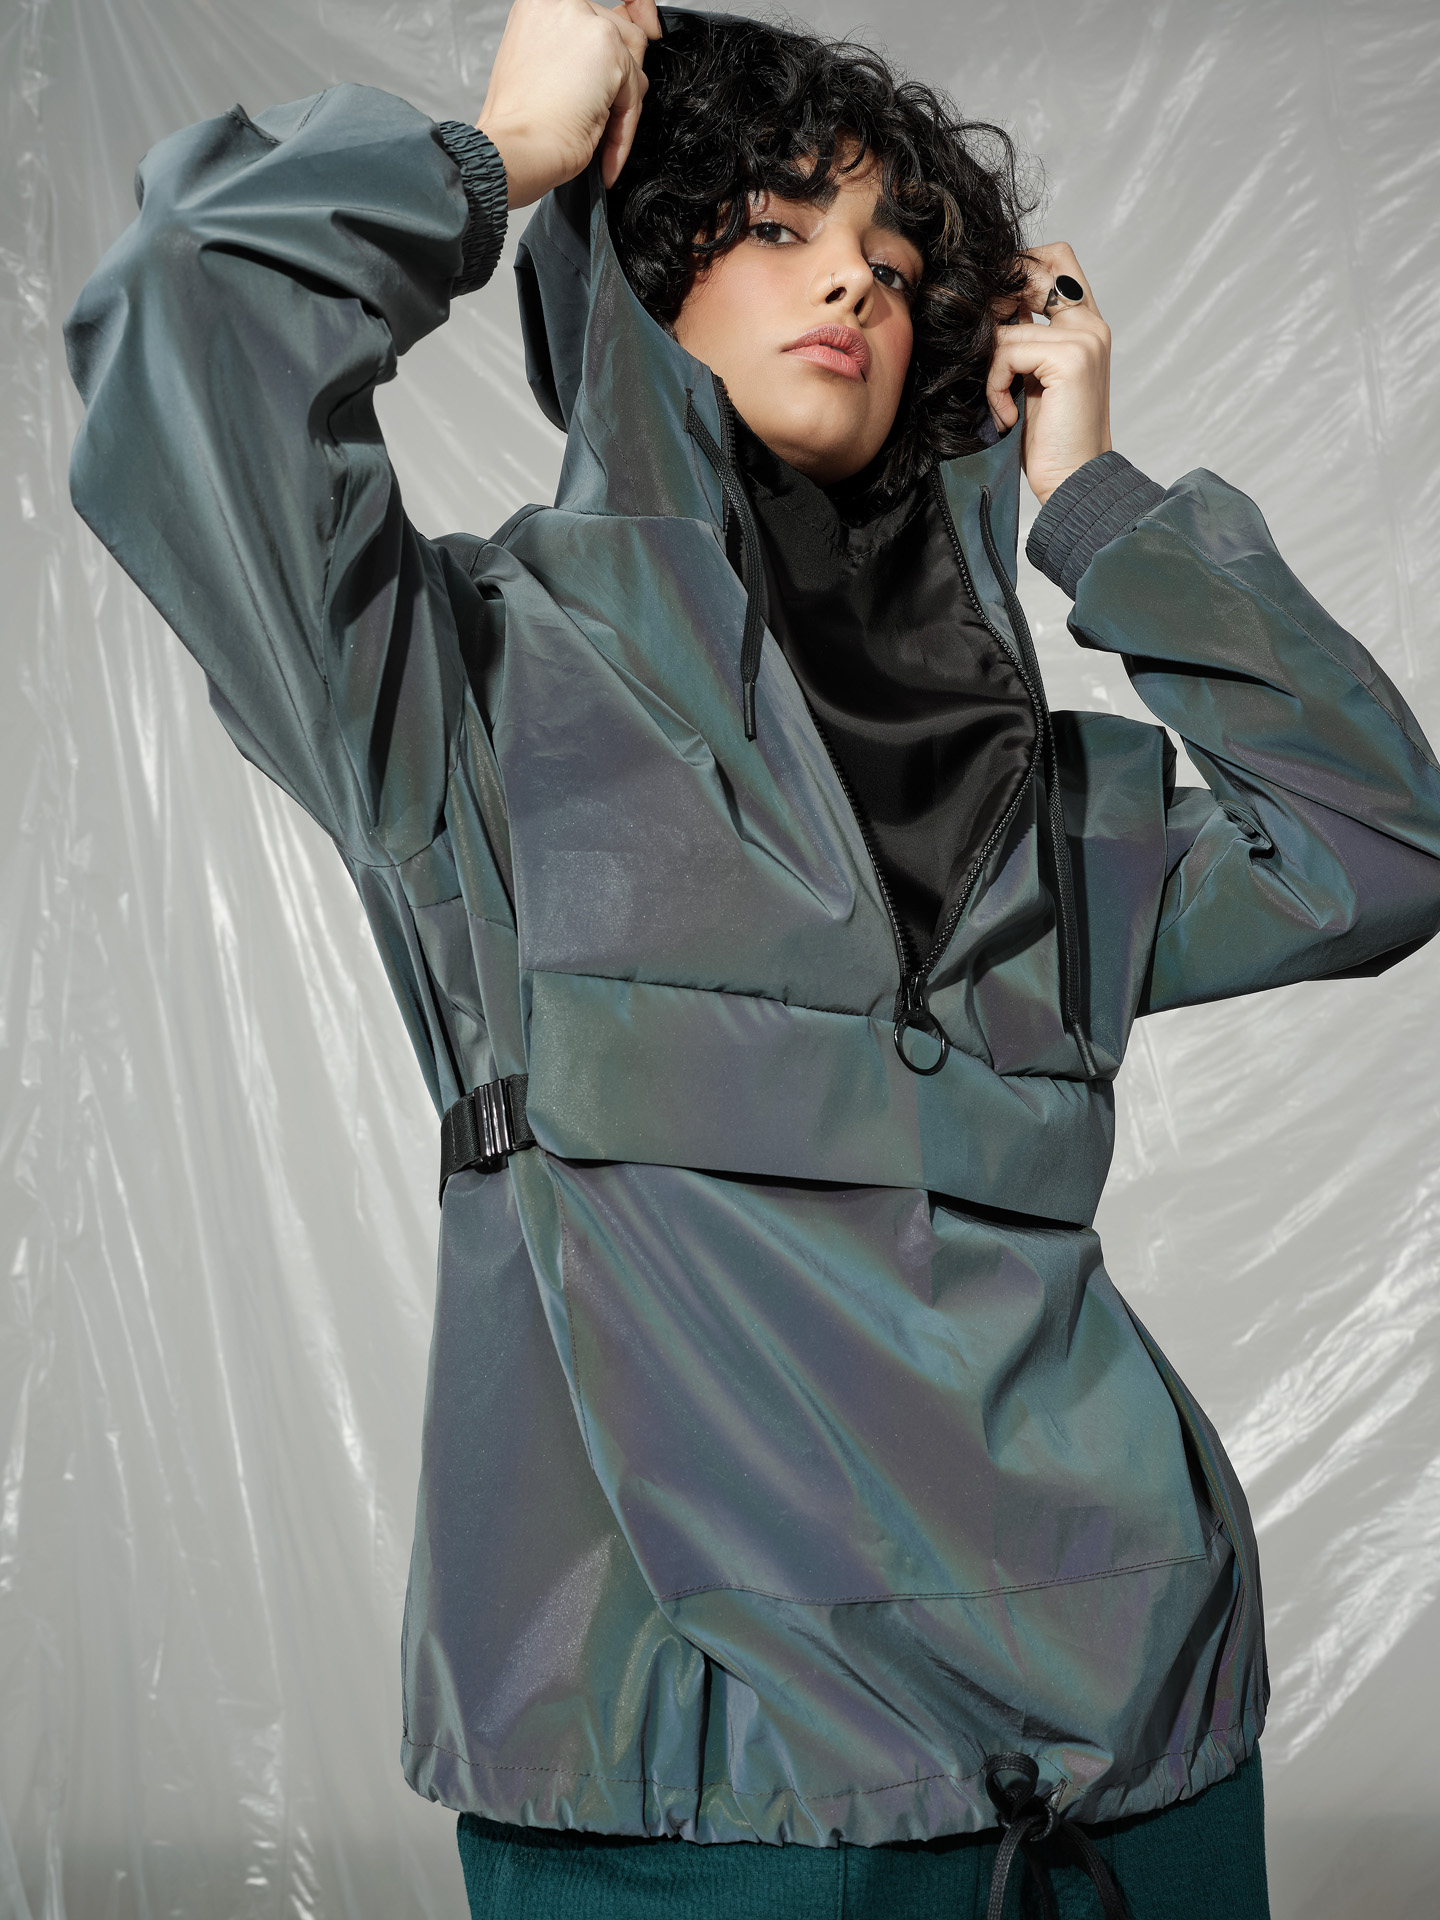 curly haired female model wearing reflective rain jacket looking at camera photographed by Maxyme G Delisle with artistic direction and styling by Studio TB